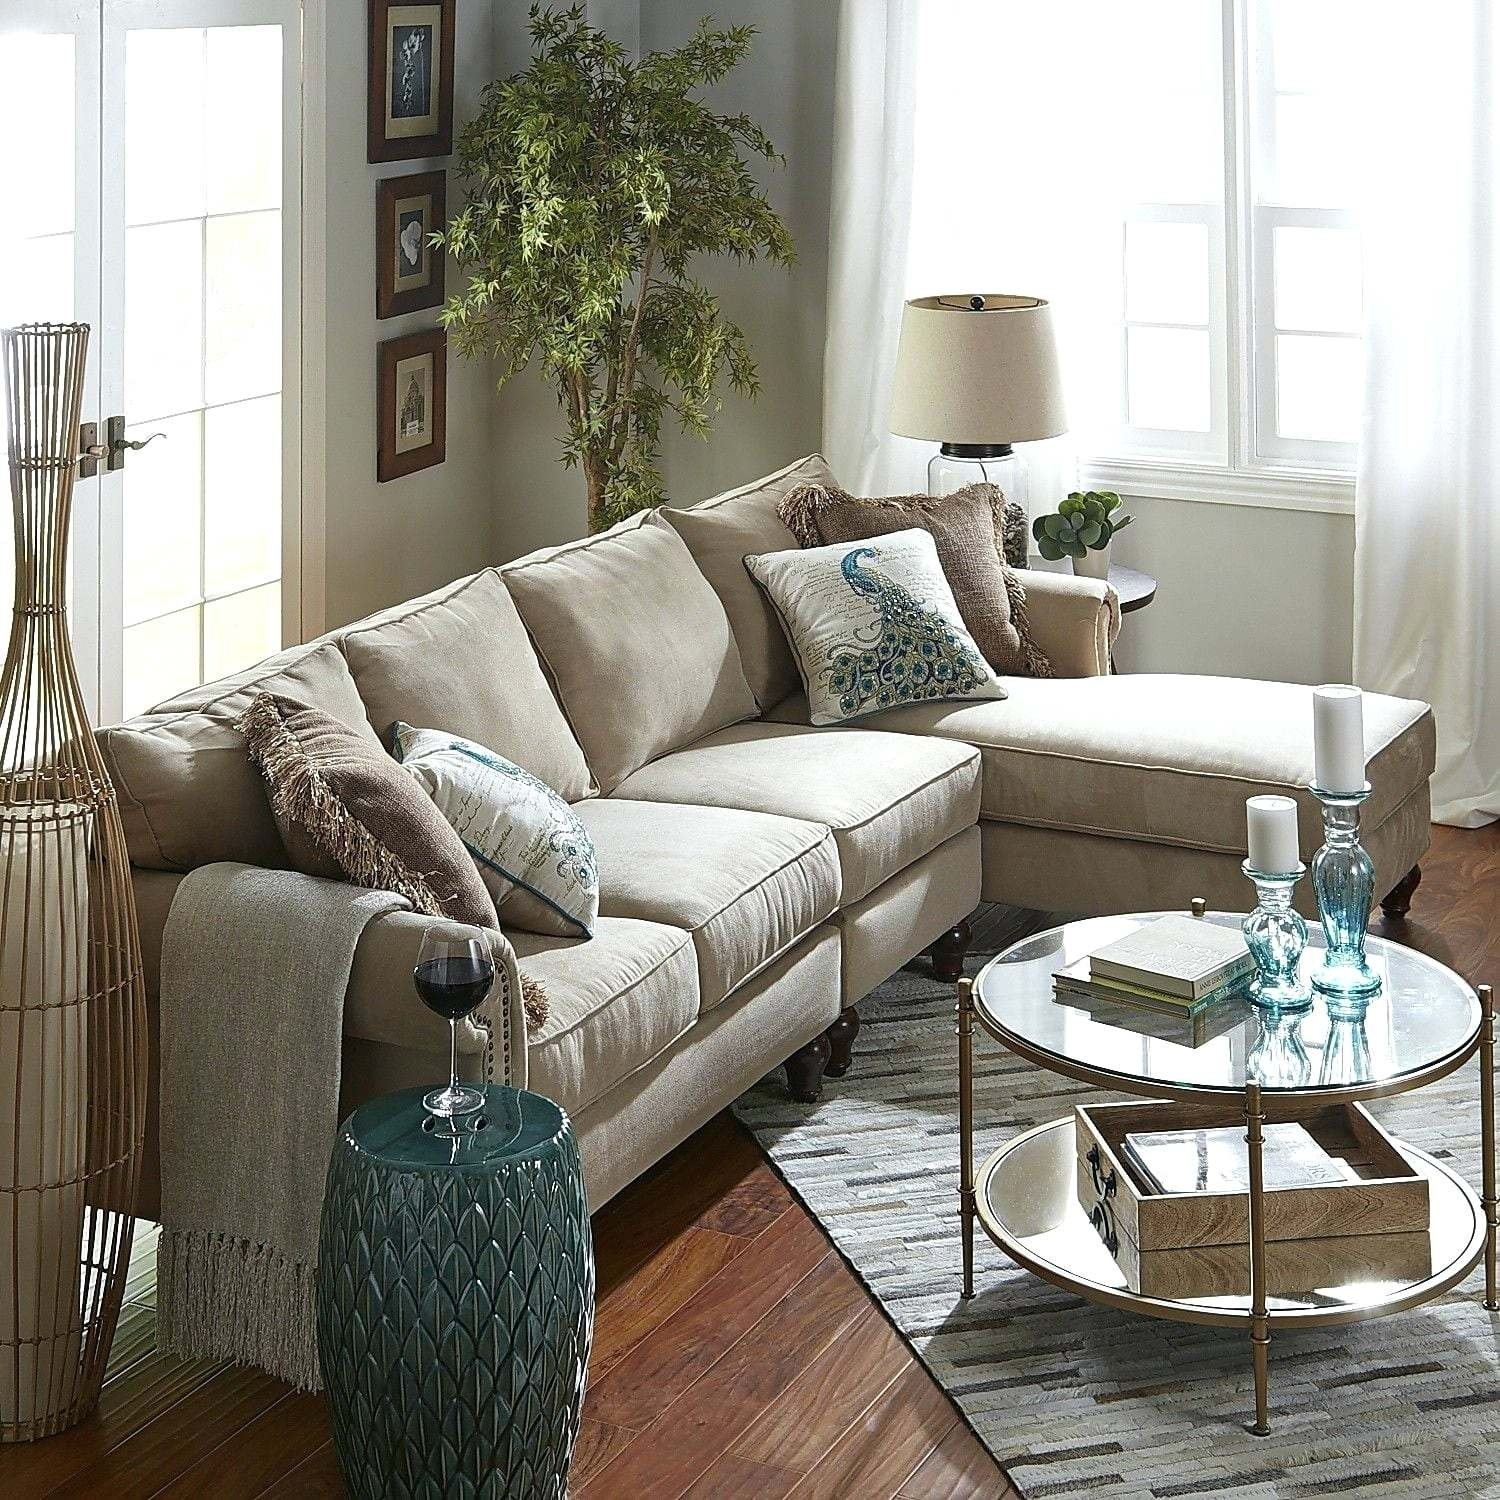 10 Fashionable Pier 1 Living Room Ideas Pier 1 Living Room Loading Pier 1  Living Room